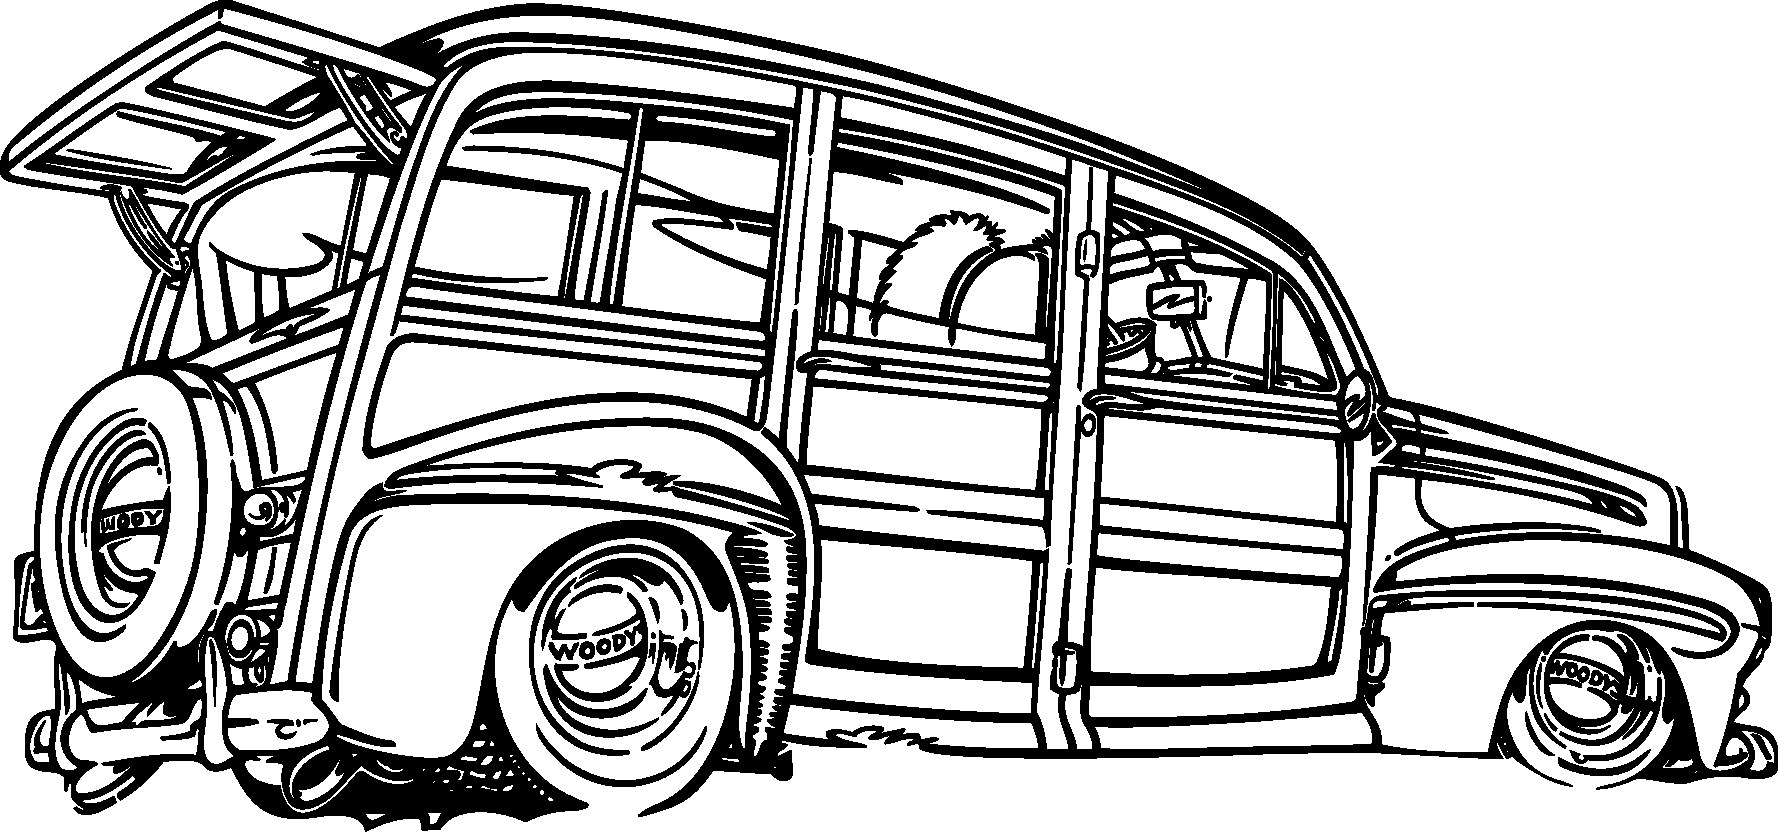 Transport Classic Cars Silhouettes Vector Free Download